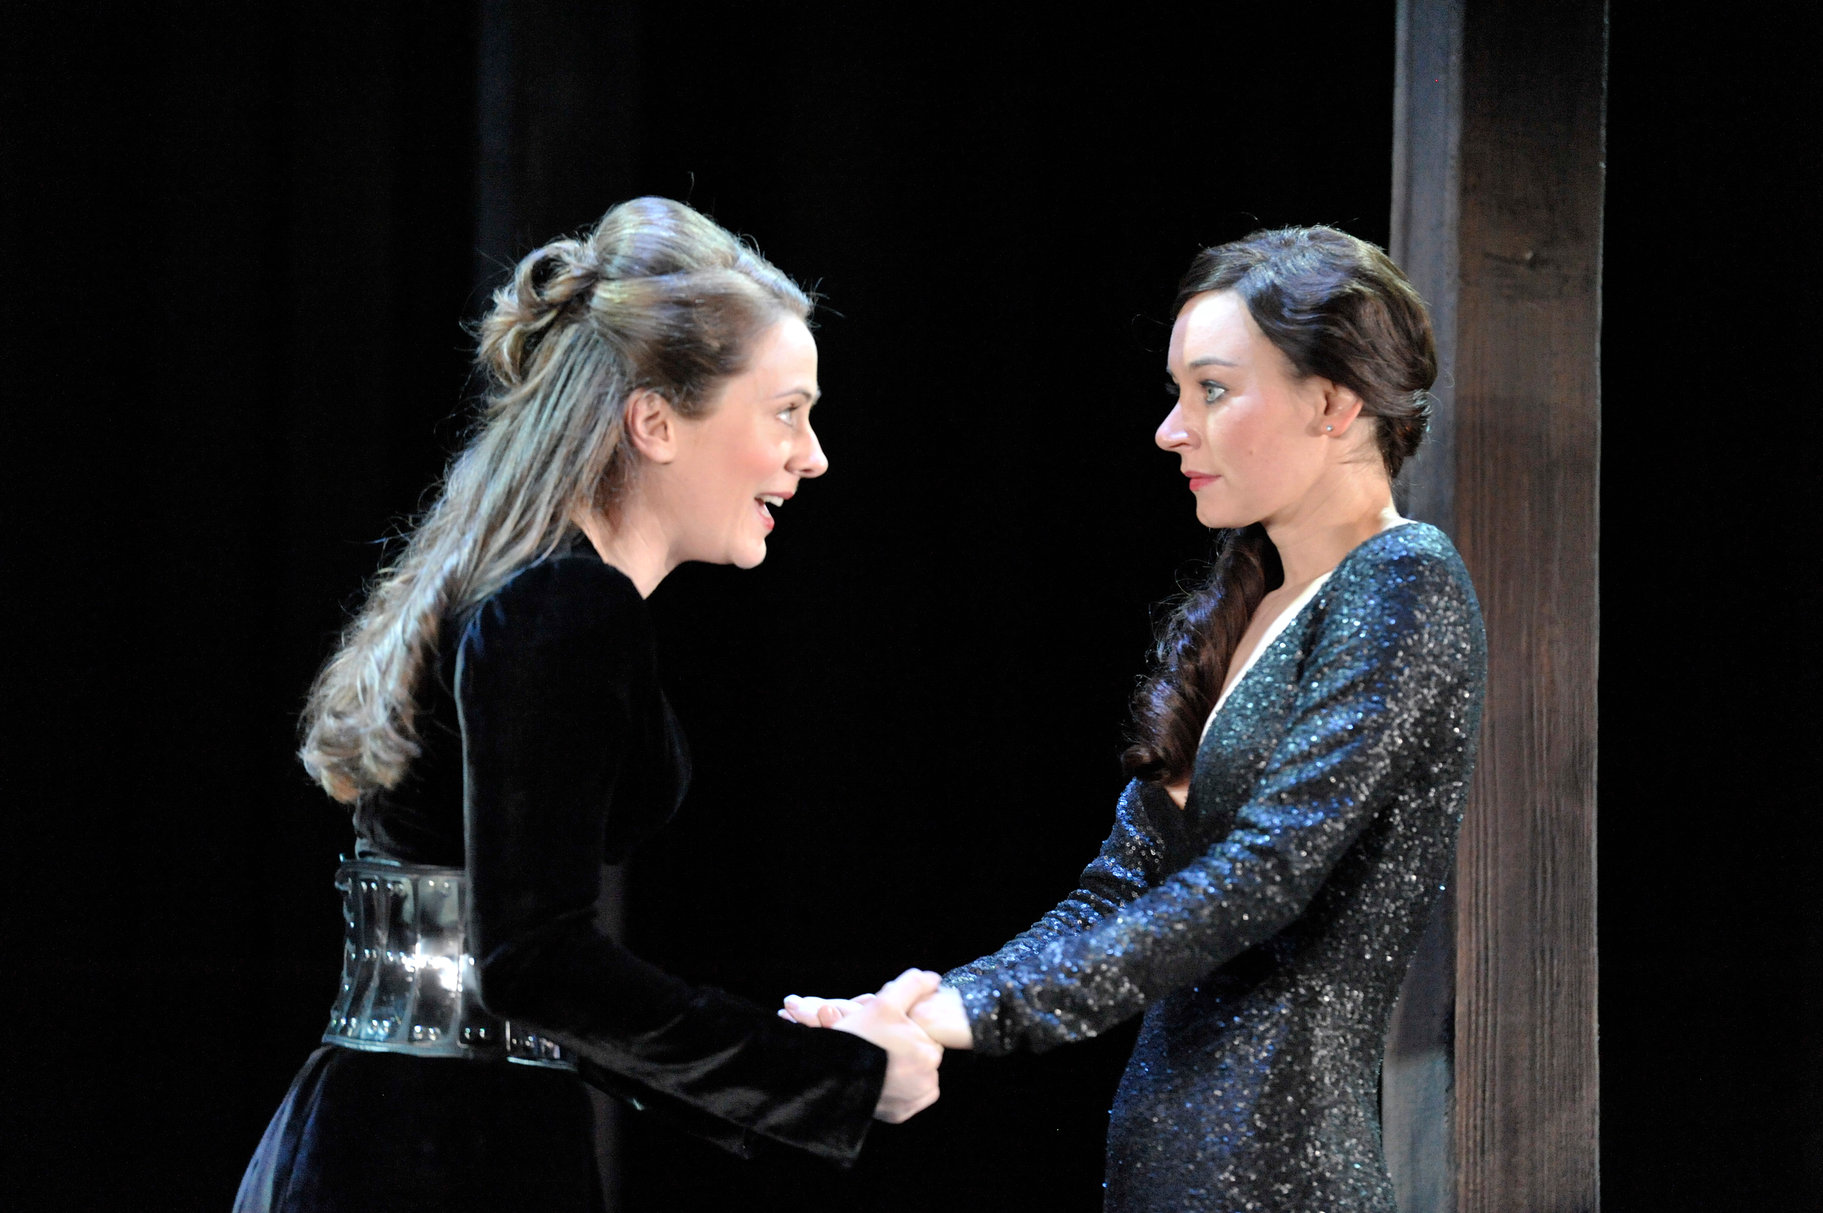 Celia and Rosalind in formal court dress.